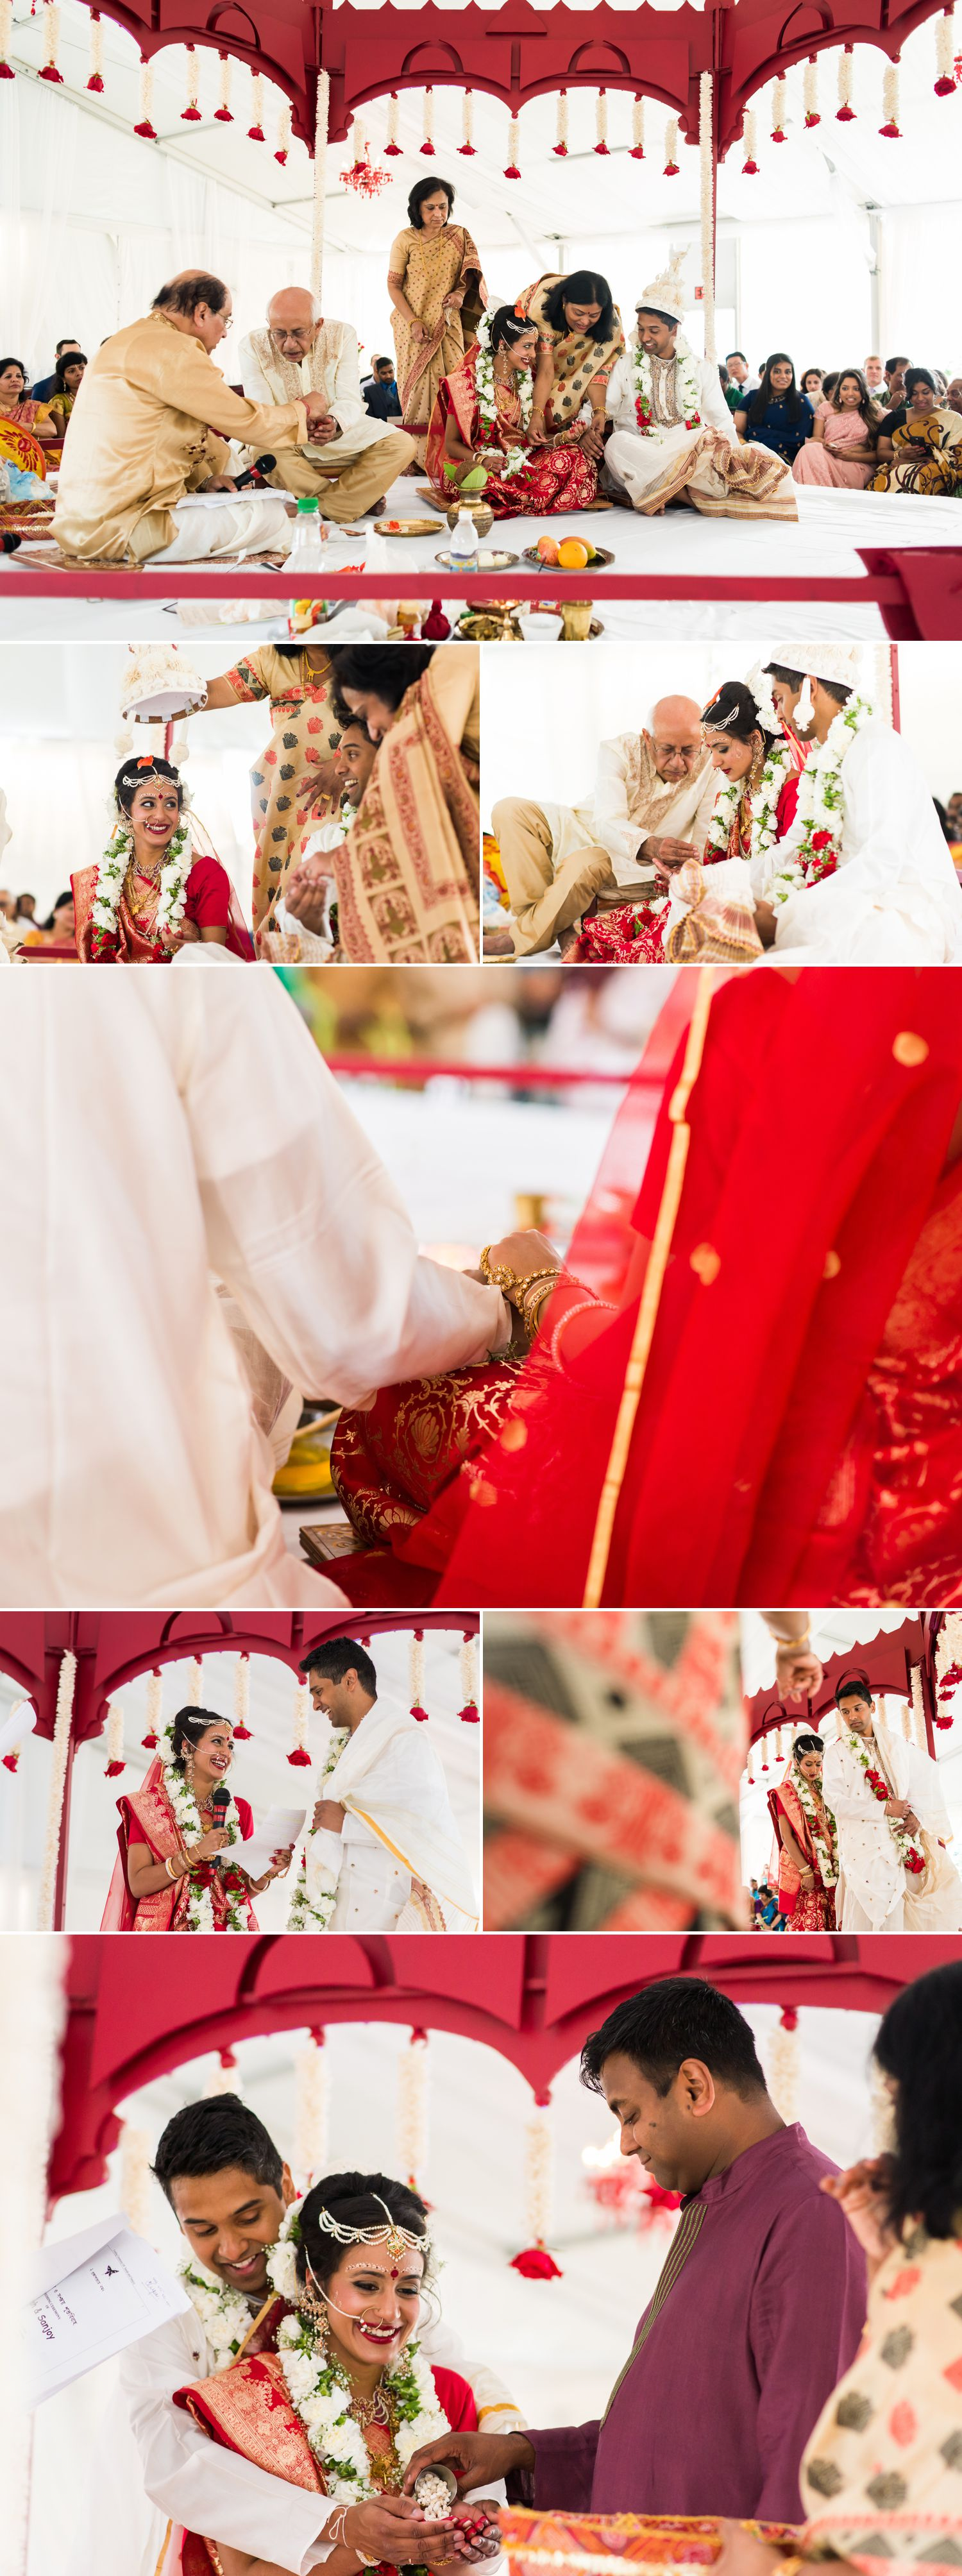 A traditional outdoor Indian wedding at the Brookstreet Hotel & Resort in Kanata